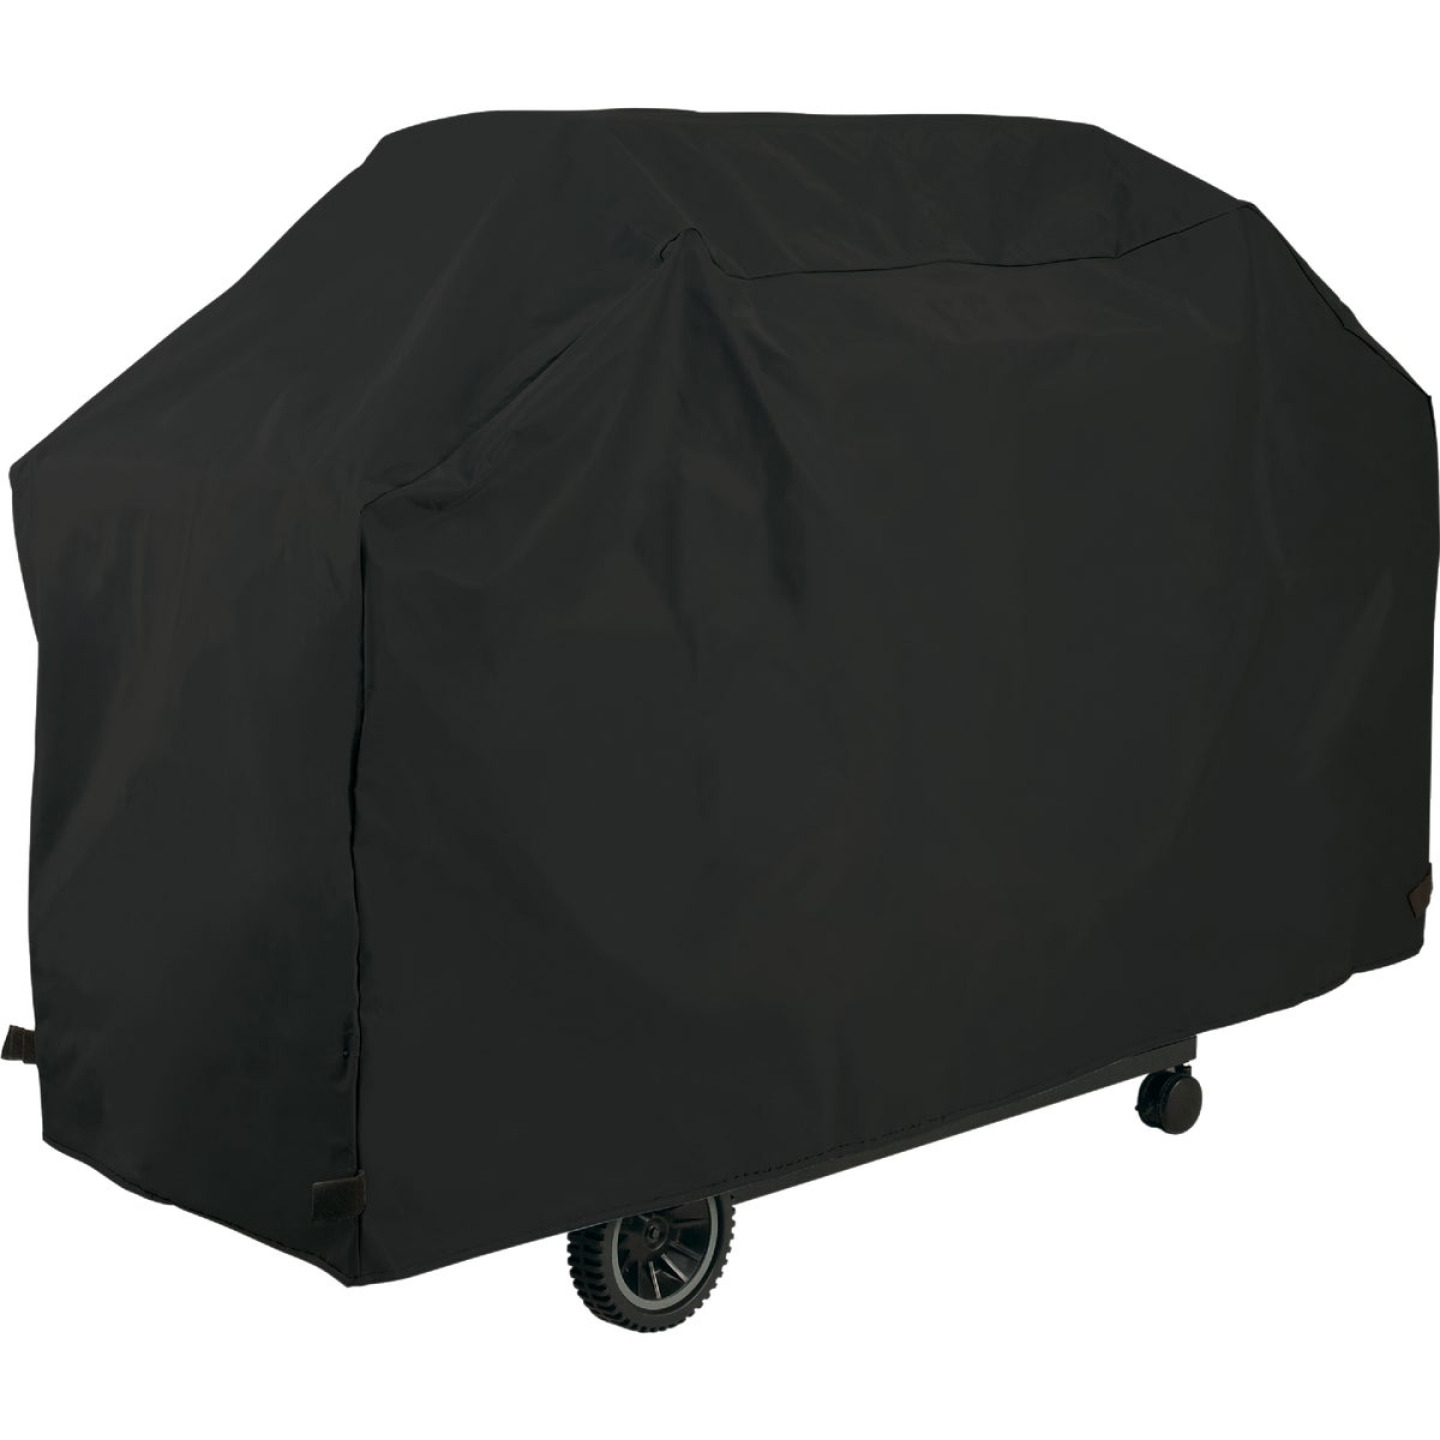 GrillPro 70 In. Black PVC Deluxe Grill Cover Image 1